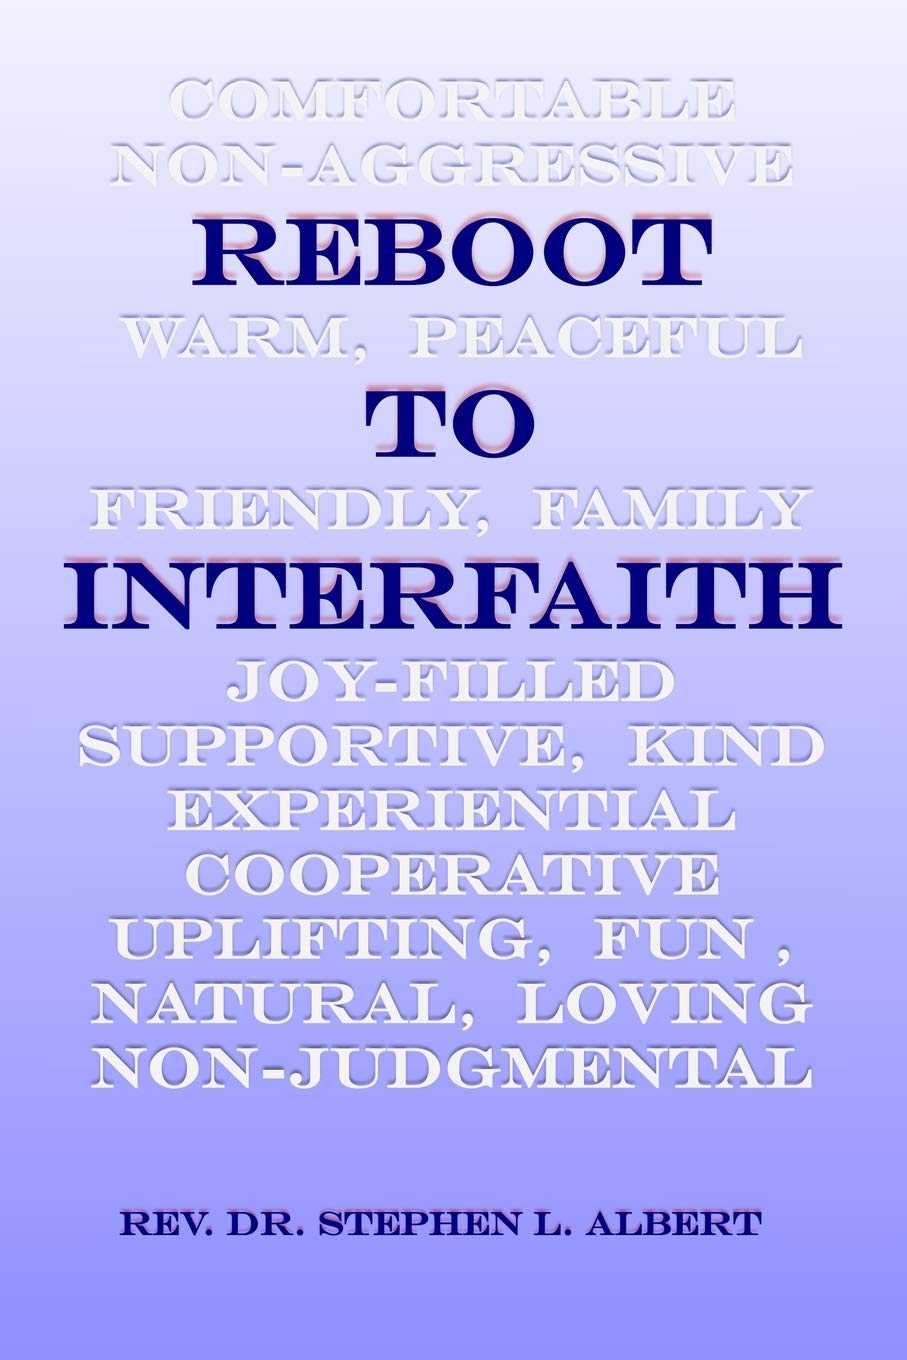 Reboot to Interfaith